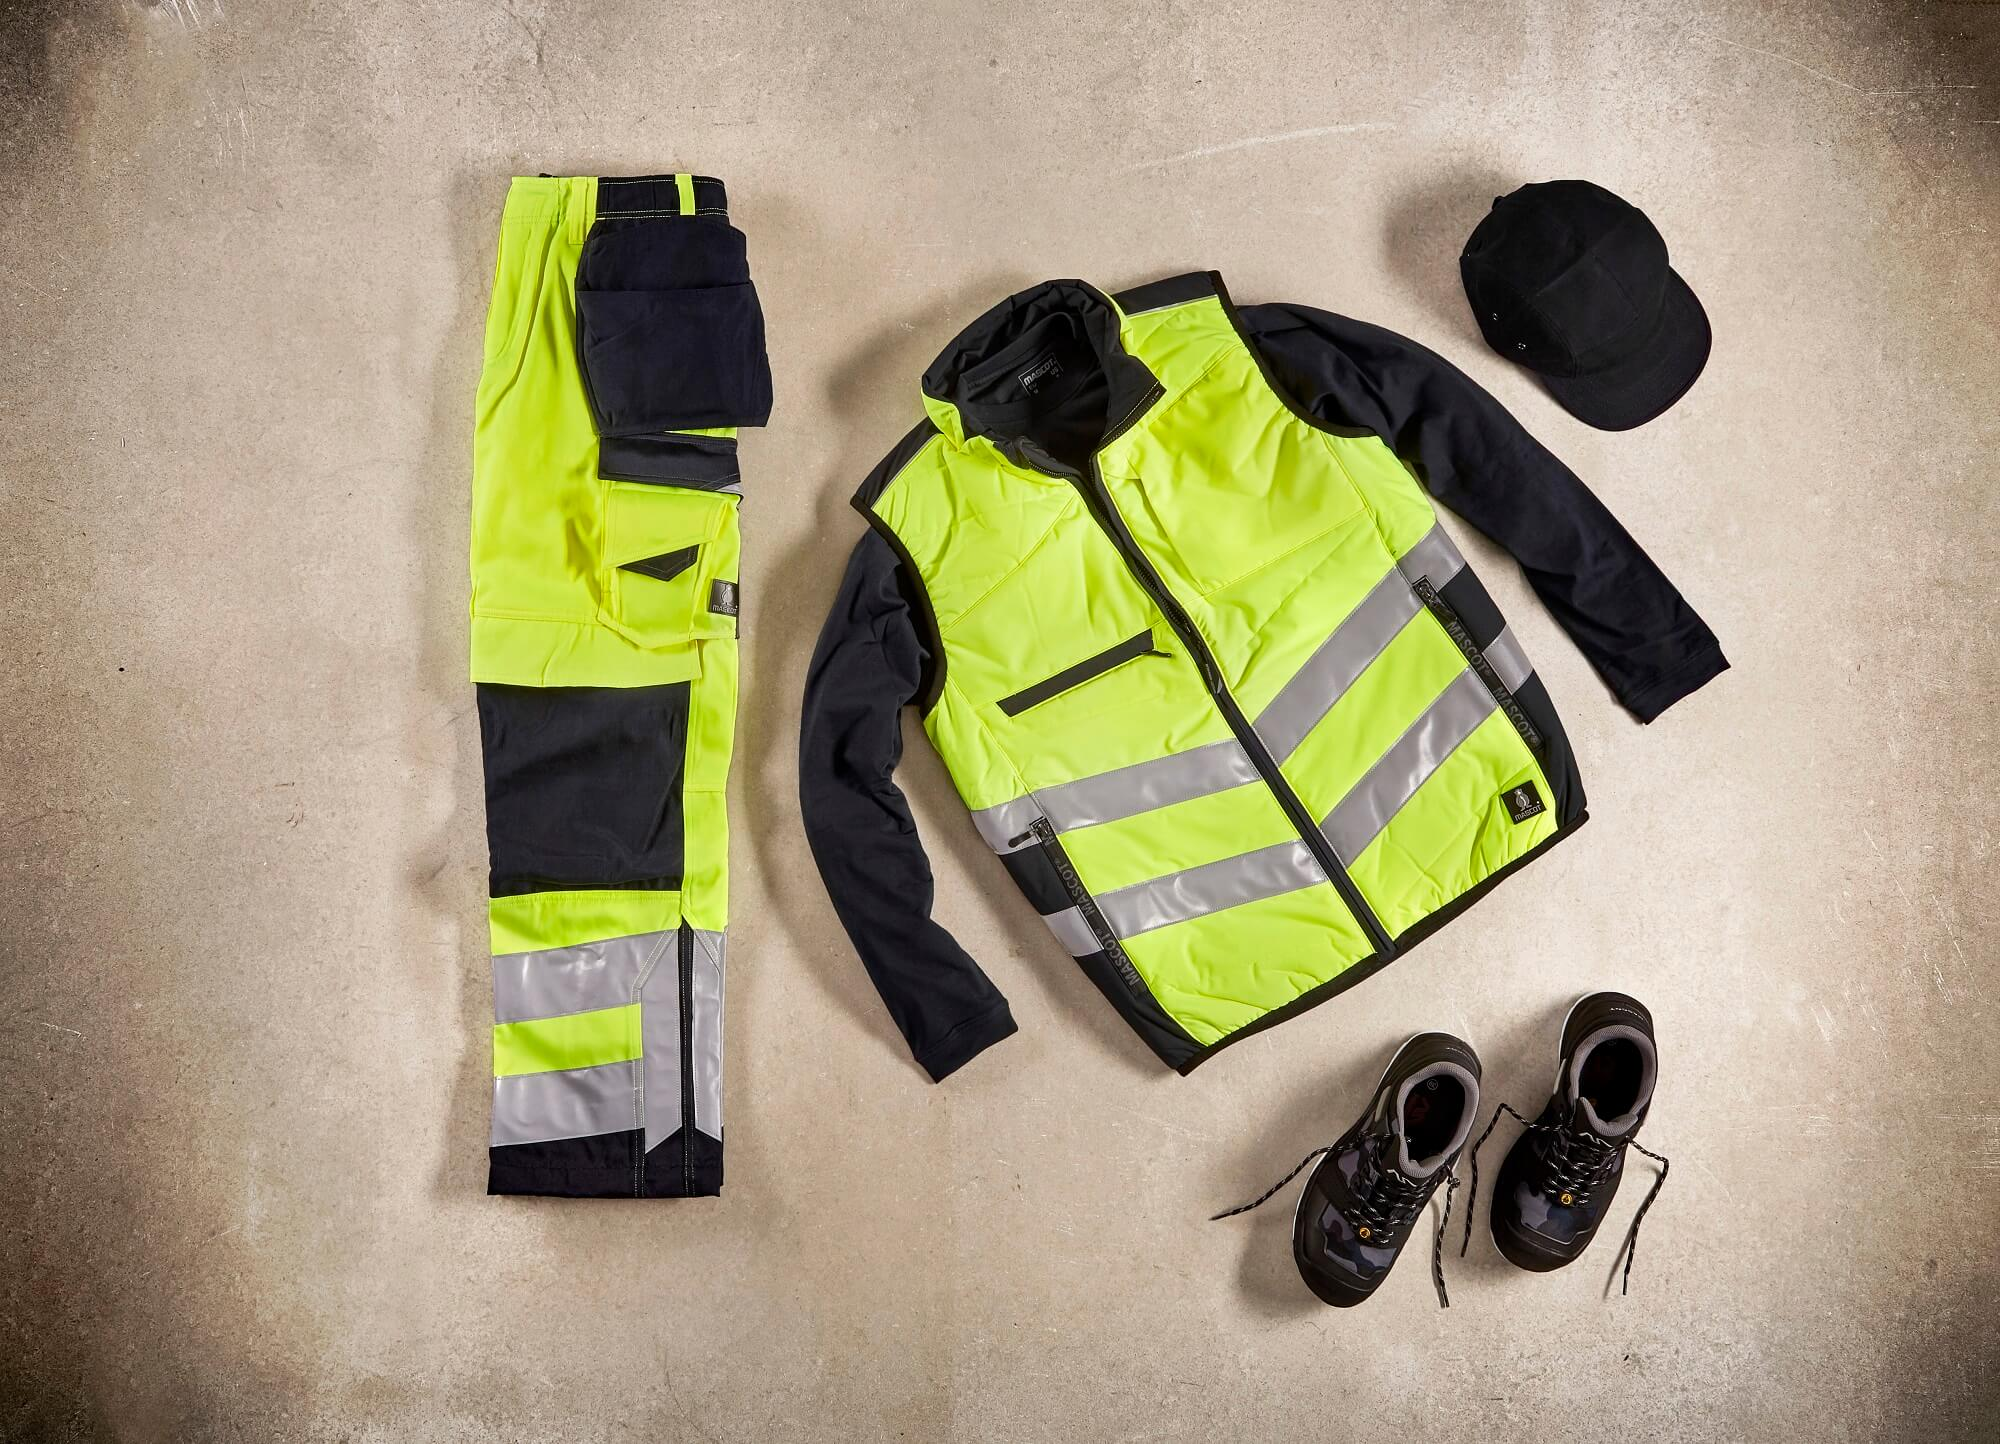 Traffic Vest & Pants with kneepad pockets and holster pockets  - Fluorescent yellow - Collage